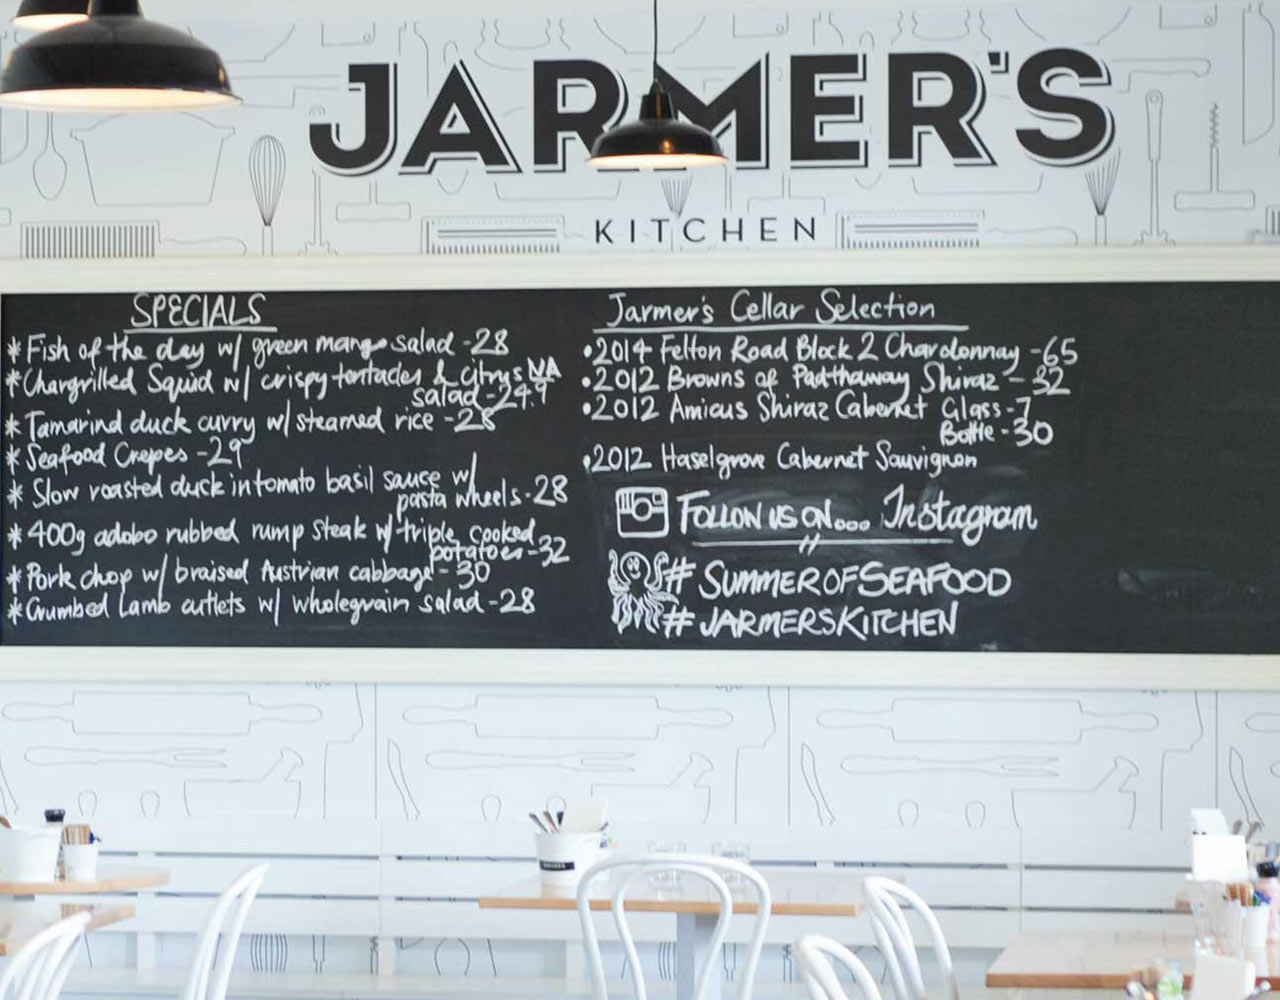 Jarmers Kitchen Website